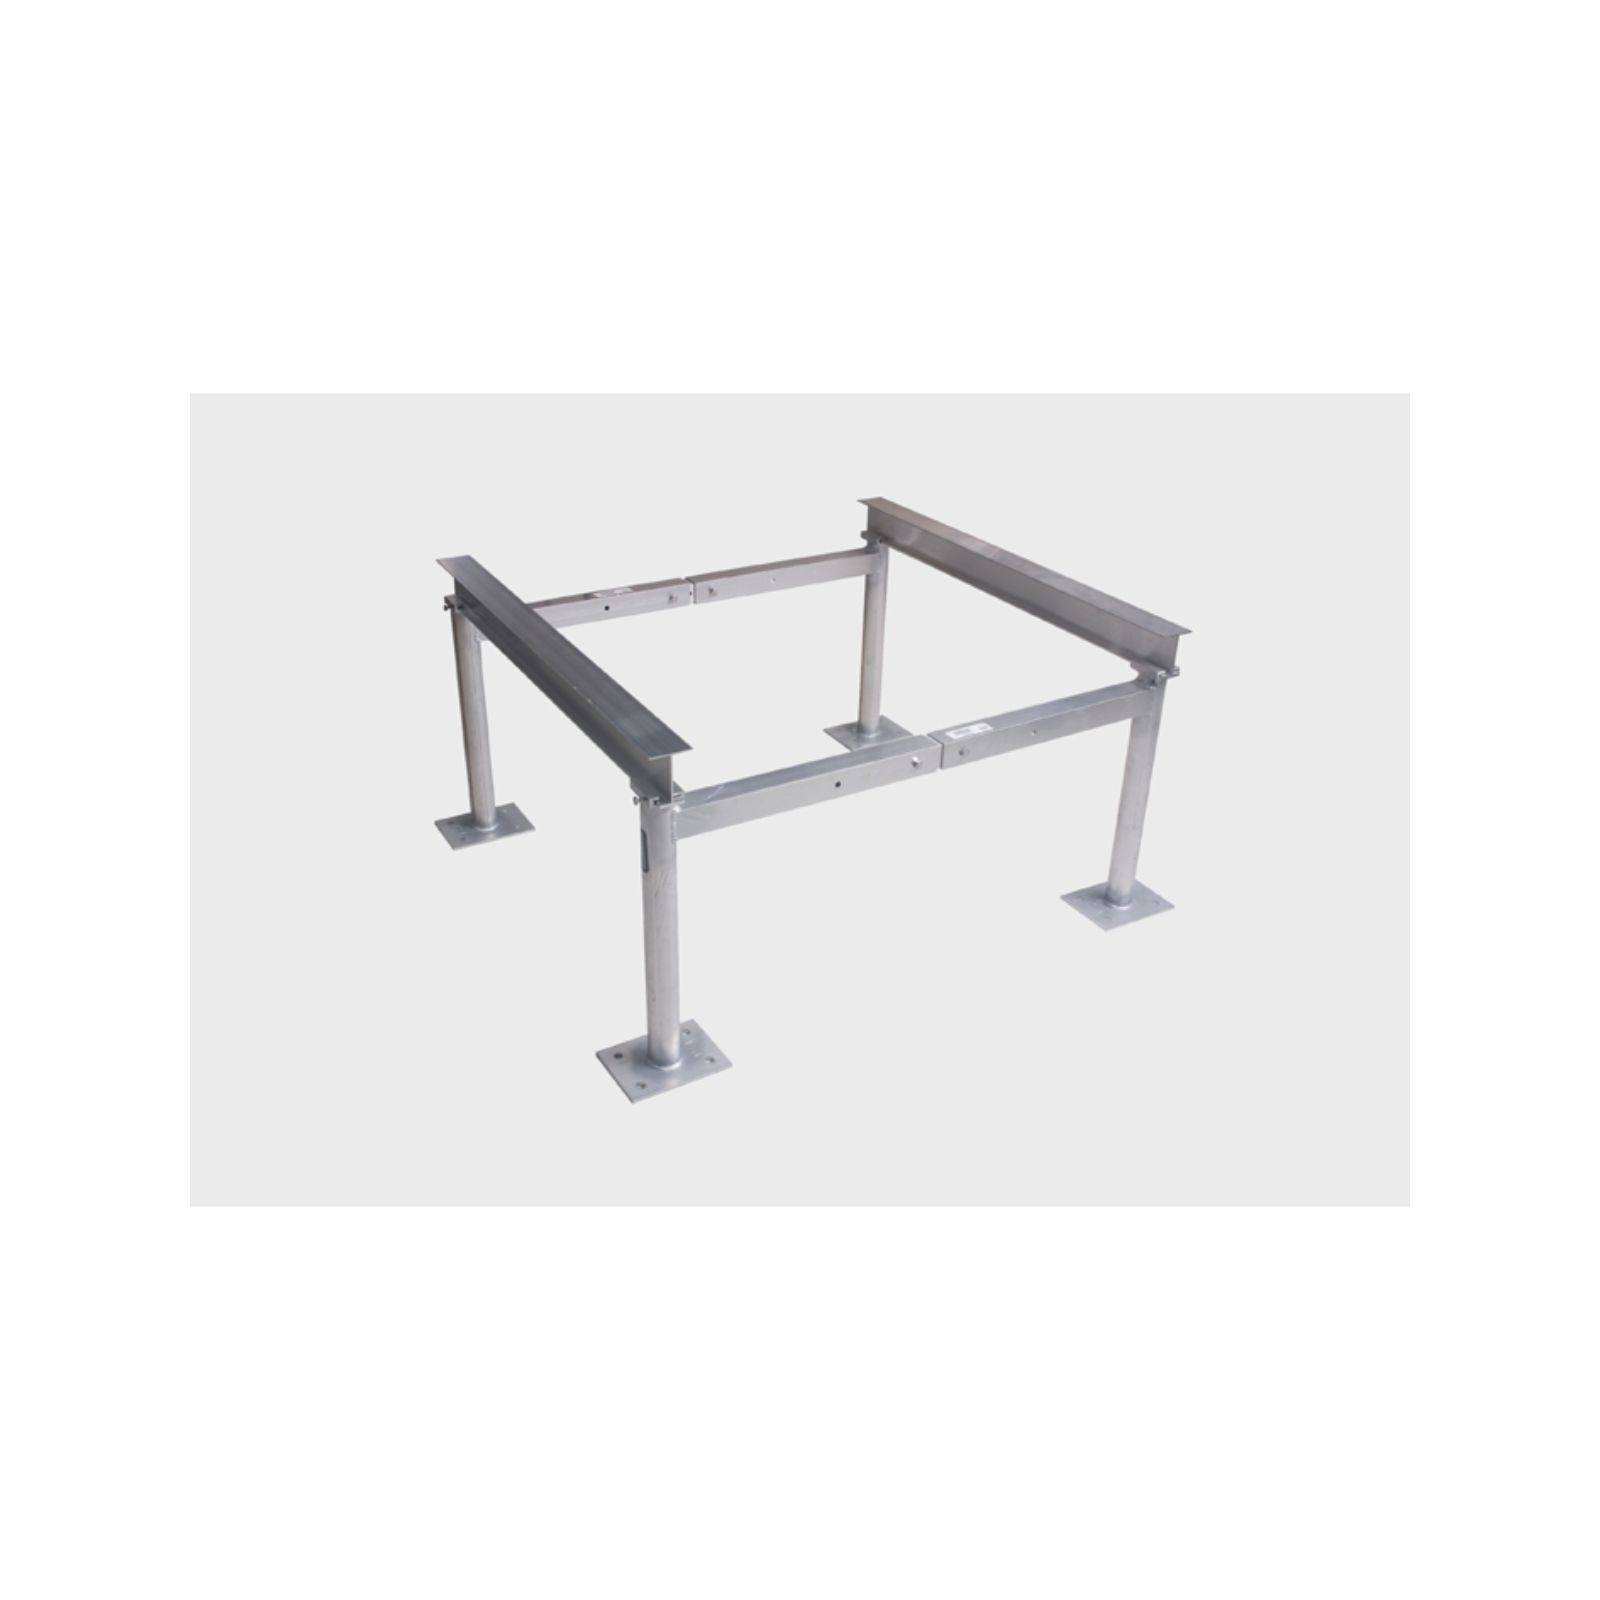 "Miami Tech AS14S24 - Aluminum Condensing Unit Stand Leg Assembly, 20"" - 30"" Spread, 24"" Tall"